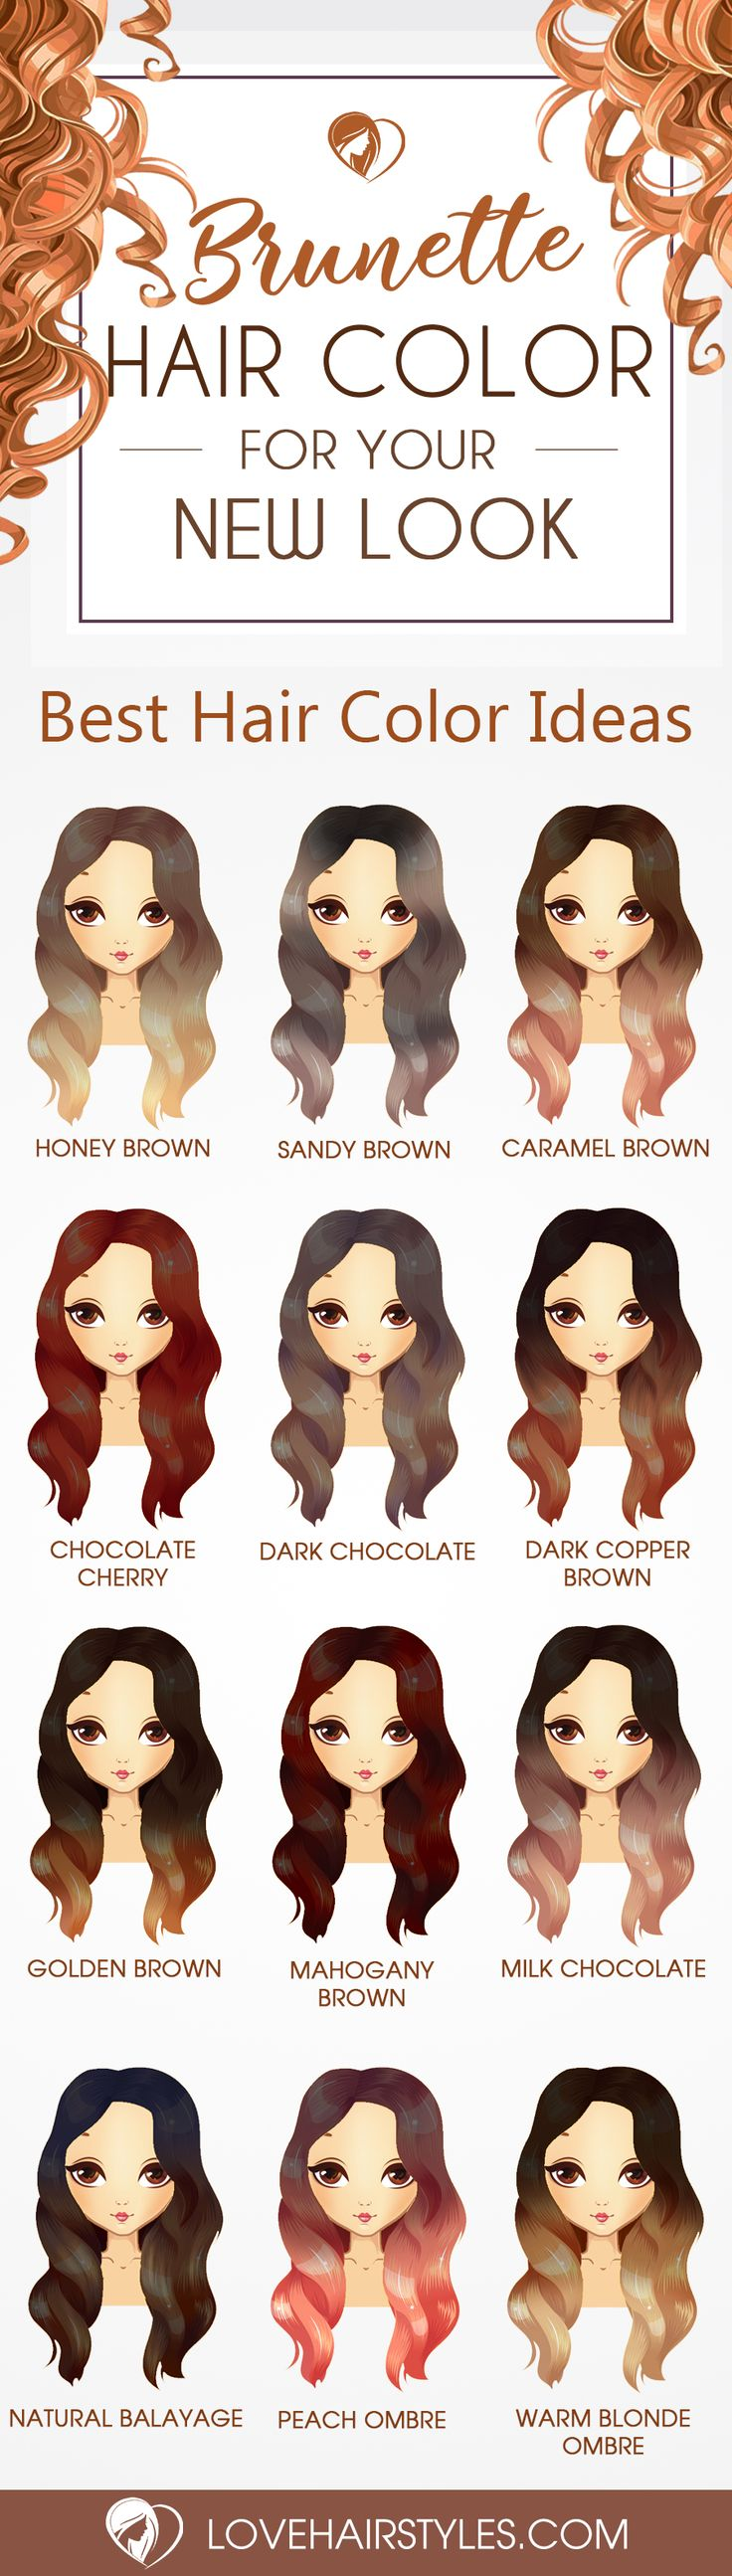 24 Beautiful Color Choices for Stunning Brunette Hair ❤ Beautiful Color Choices for Stunning Brunette Hair ❤ See more: http://lovehairstyles.com/brunette-hair-color-choices/Brunette hair tends to get overlooked, but it is really quite stunning. There are so many gorgeous rich and lush shades of brunette! From chestnut to honey brown to chocolate, the possibilities are unlimited!